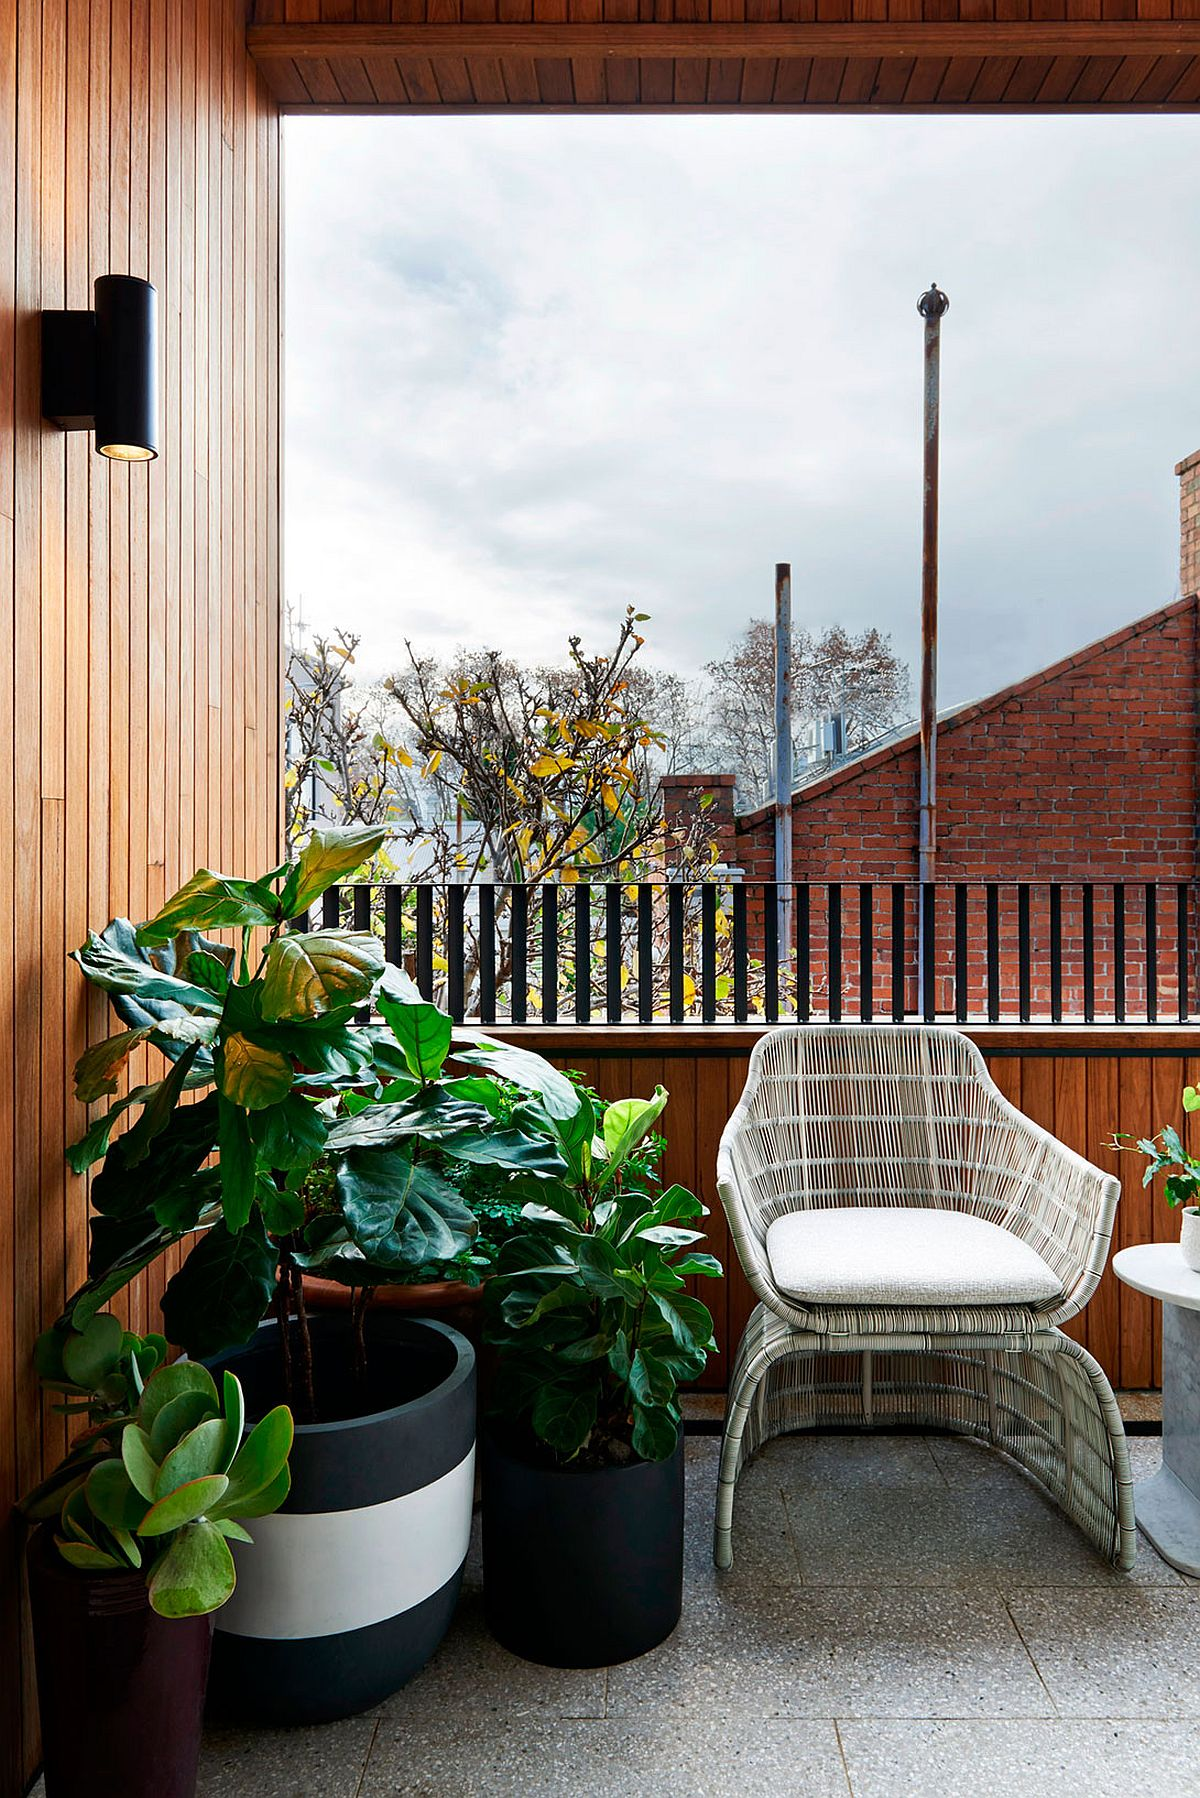 Potted plants bring green goodness to the urbane Melbourne home